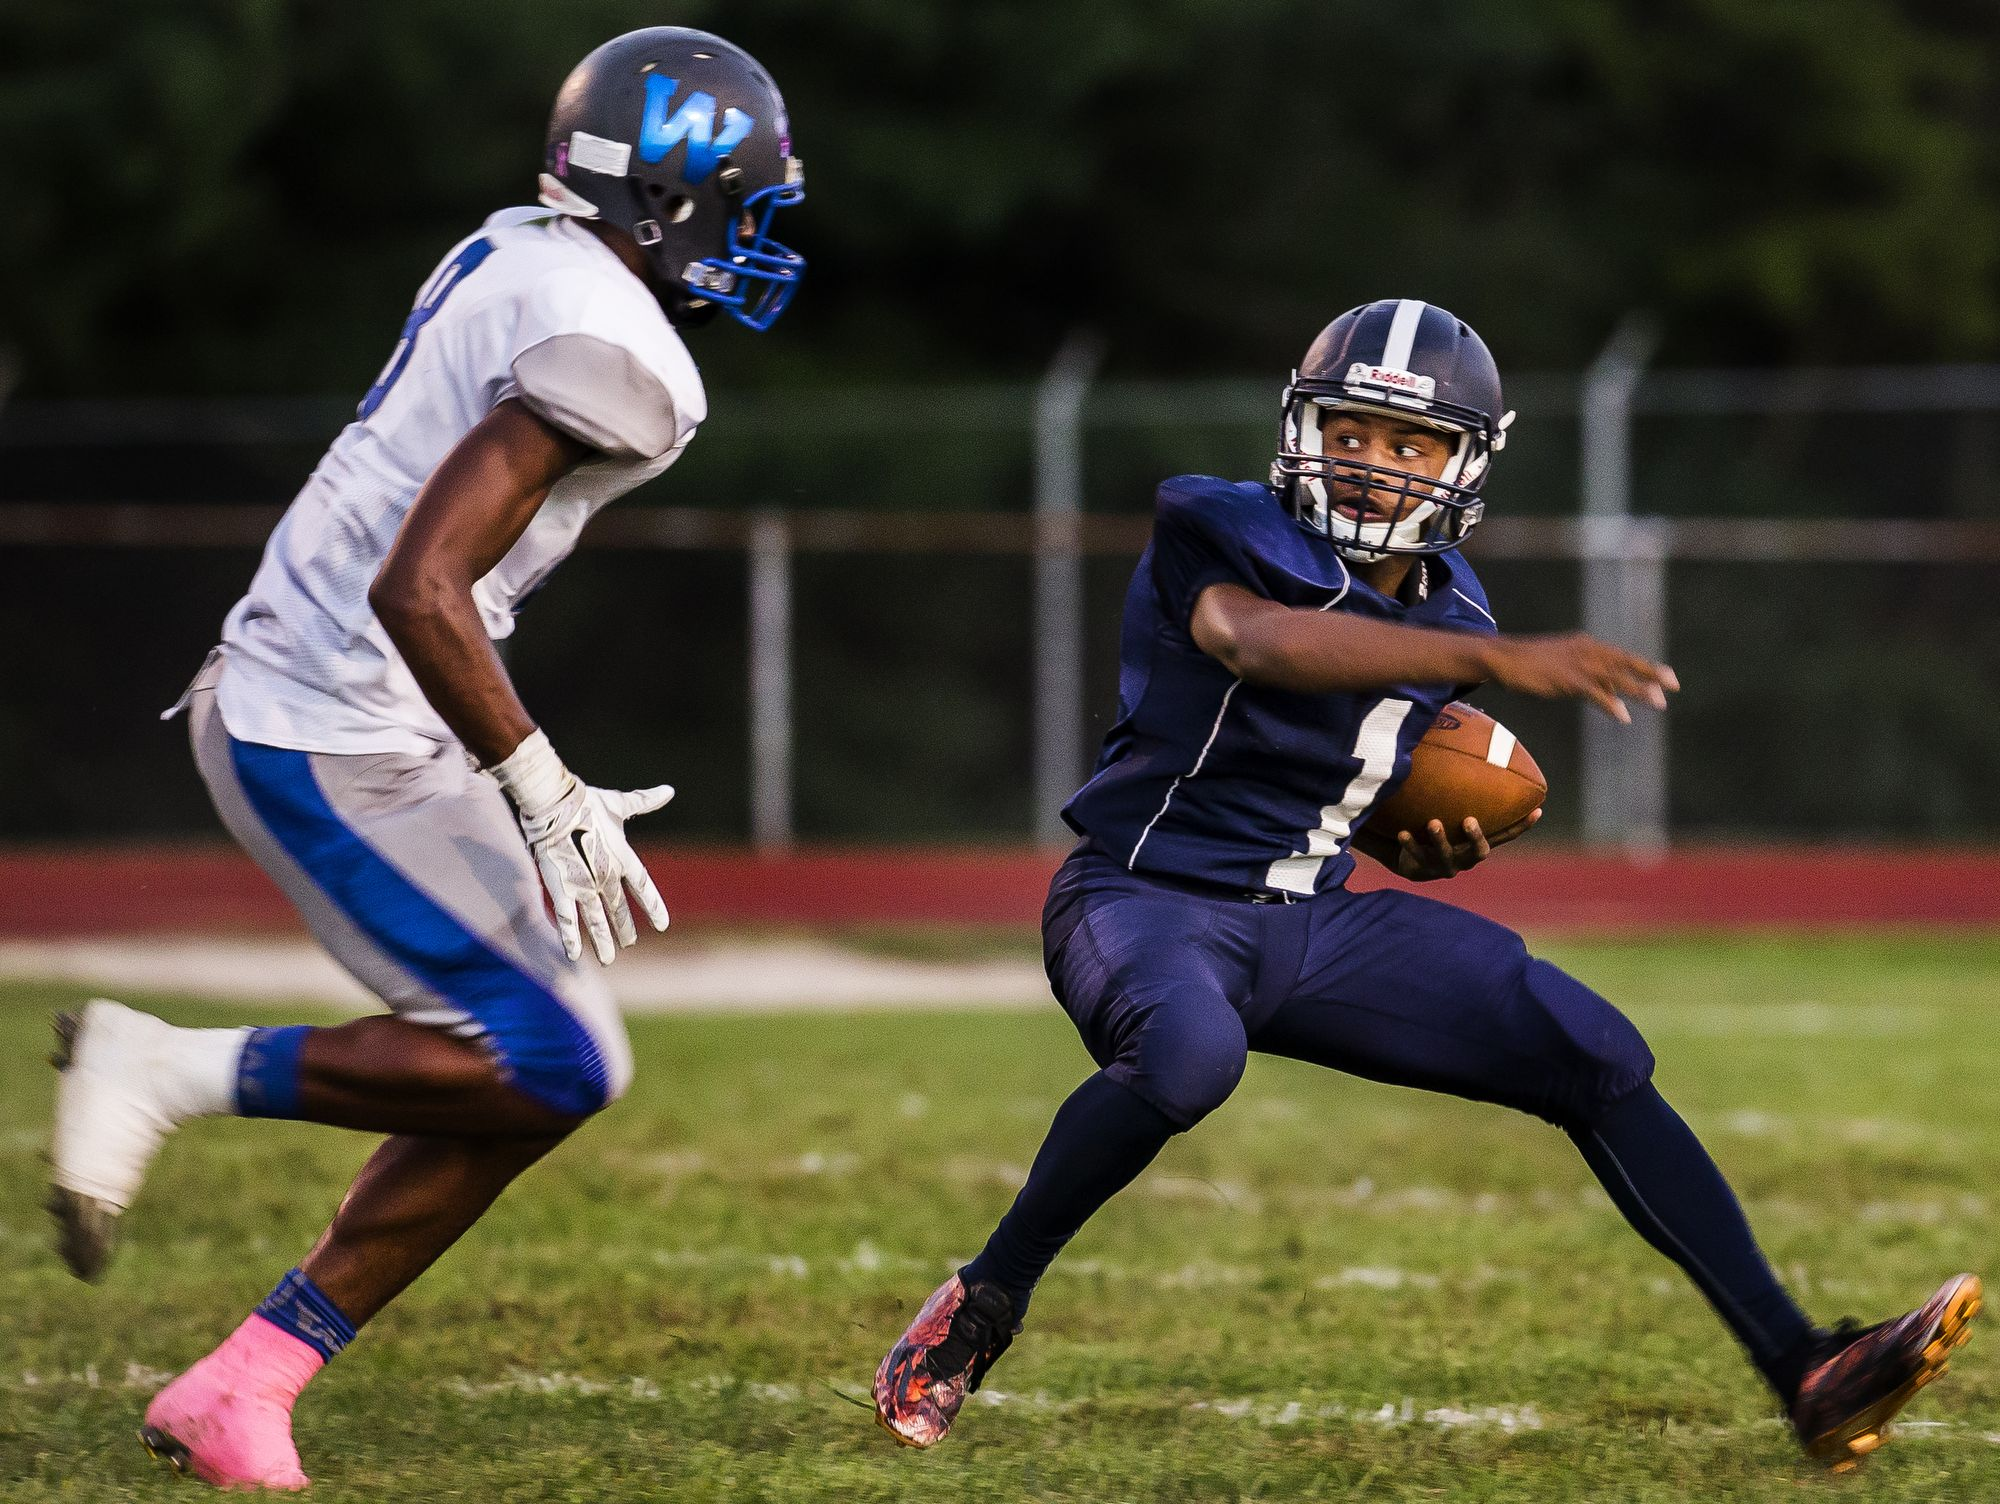 Lake Forest quarterback Xavier Daniels (No. 1) as Woodbridge's Jamon Kane closes in on him in the second quarter of Woodbridge's 32-0 win over Lake Forest at Lake Forest High School in Felton on Monday evening.